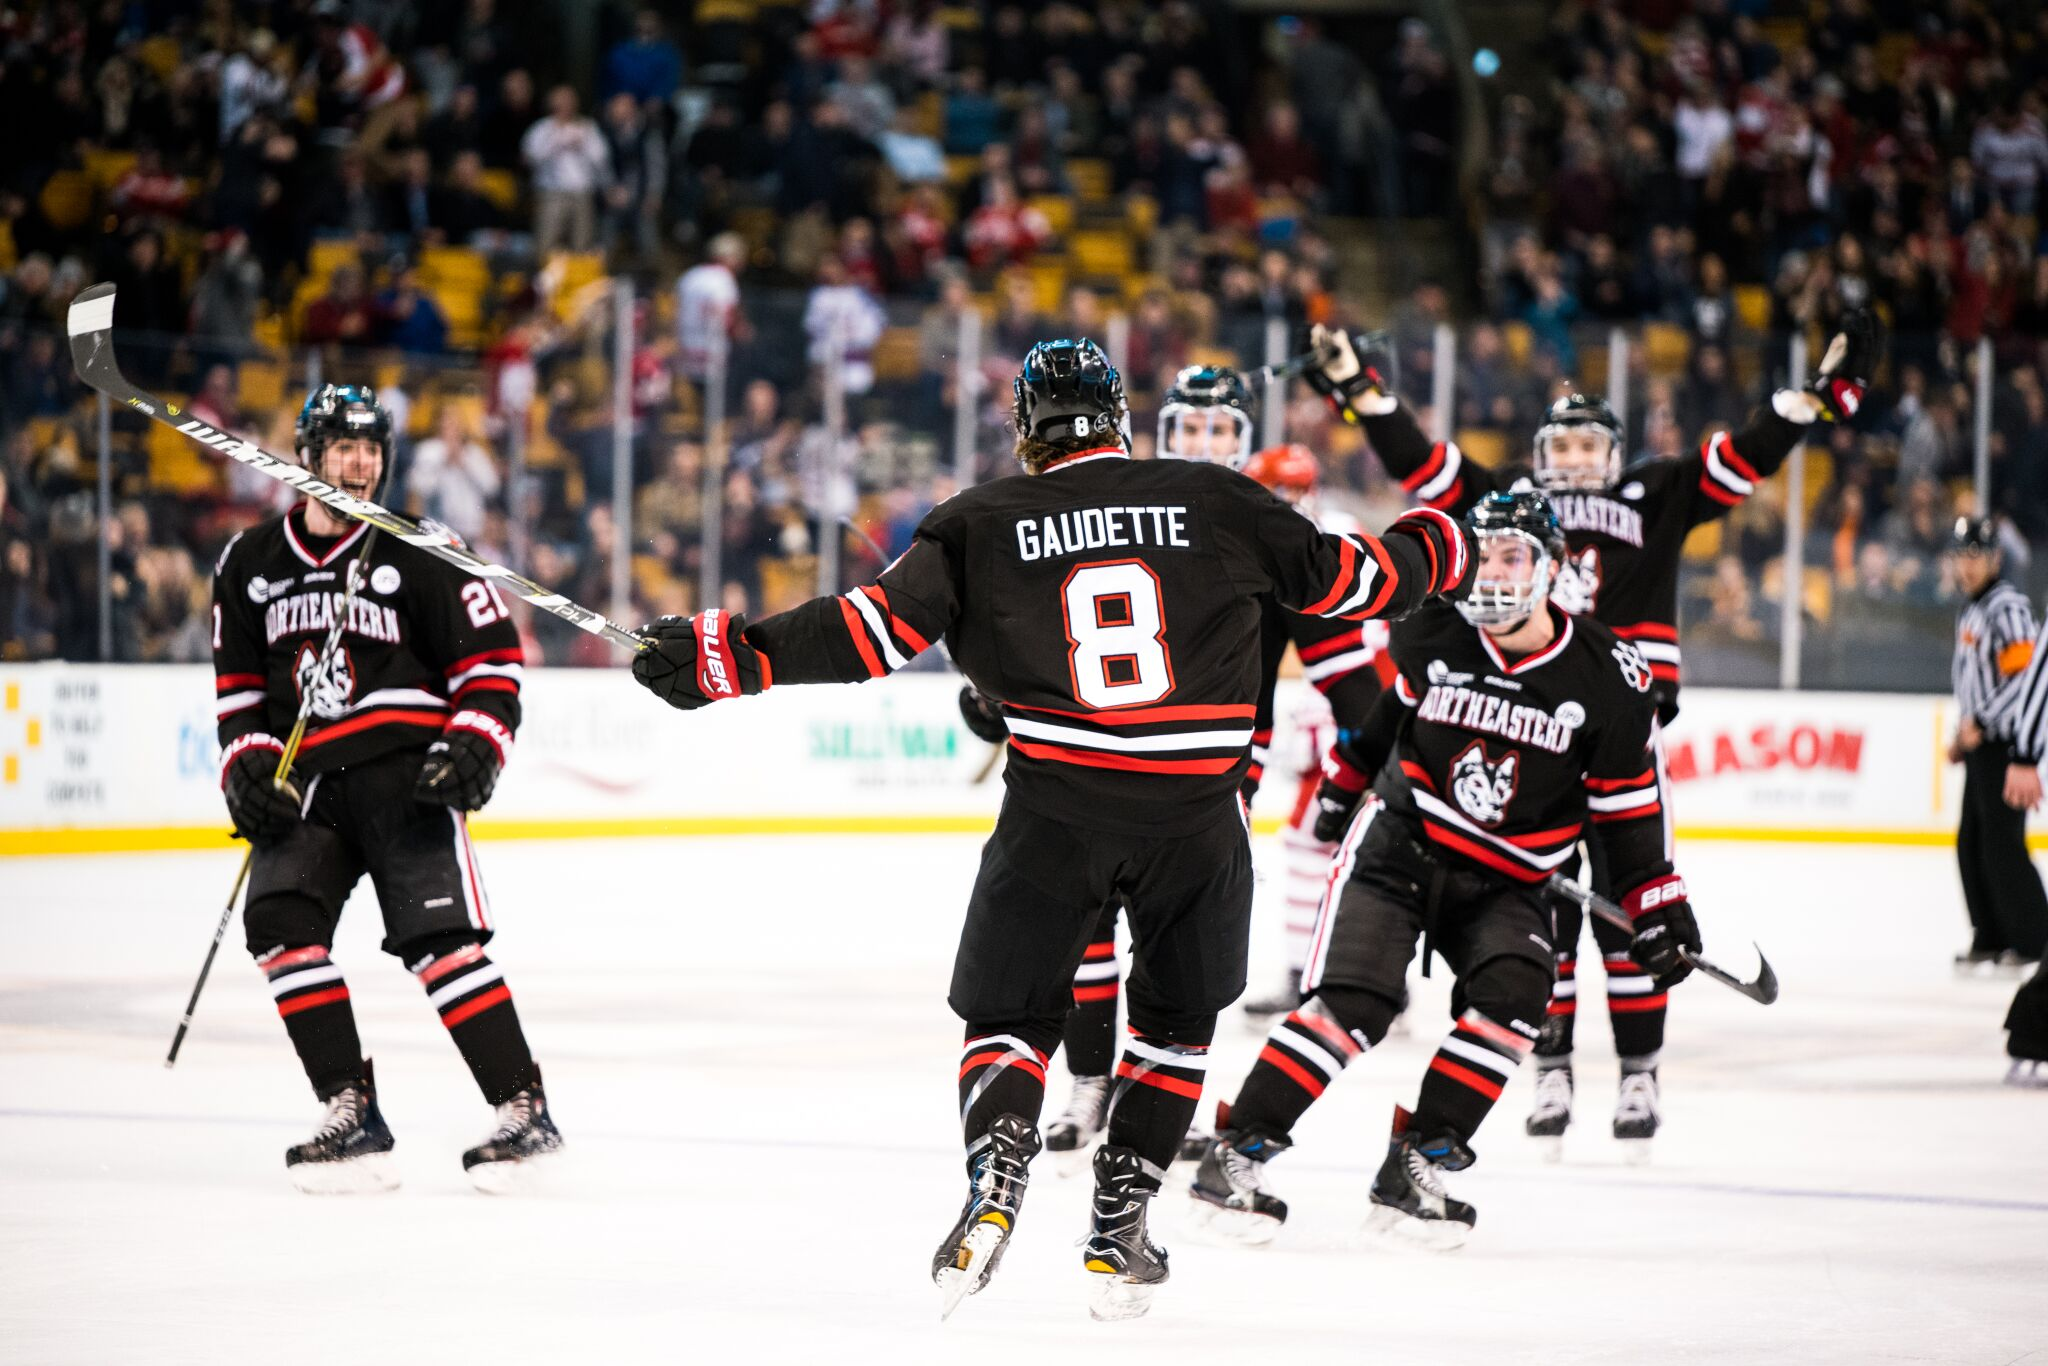 Canucks sign Adam Gaudette to 3 year entry-level contract – Canucksarmy 651381d57